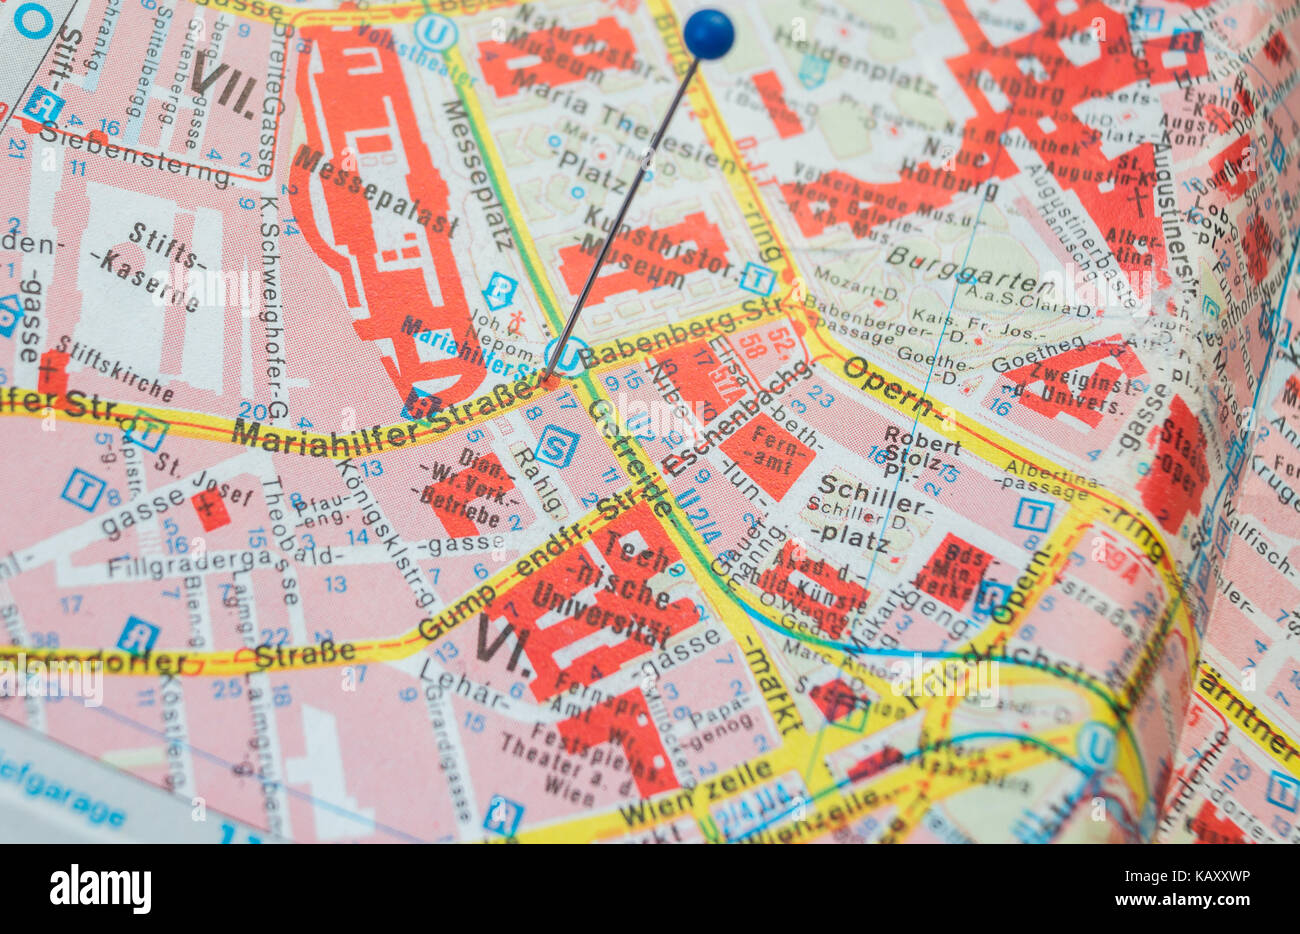 Downtown Vienna map Pin set on the Largest Shopping street Stock